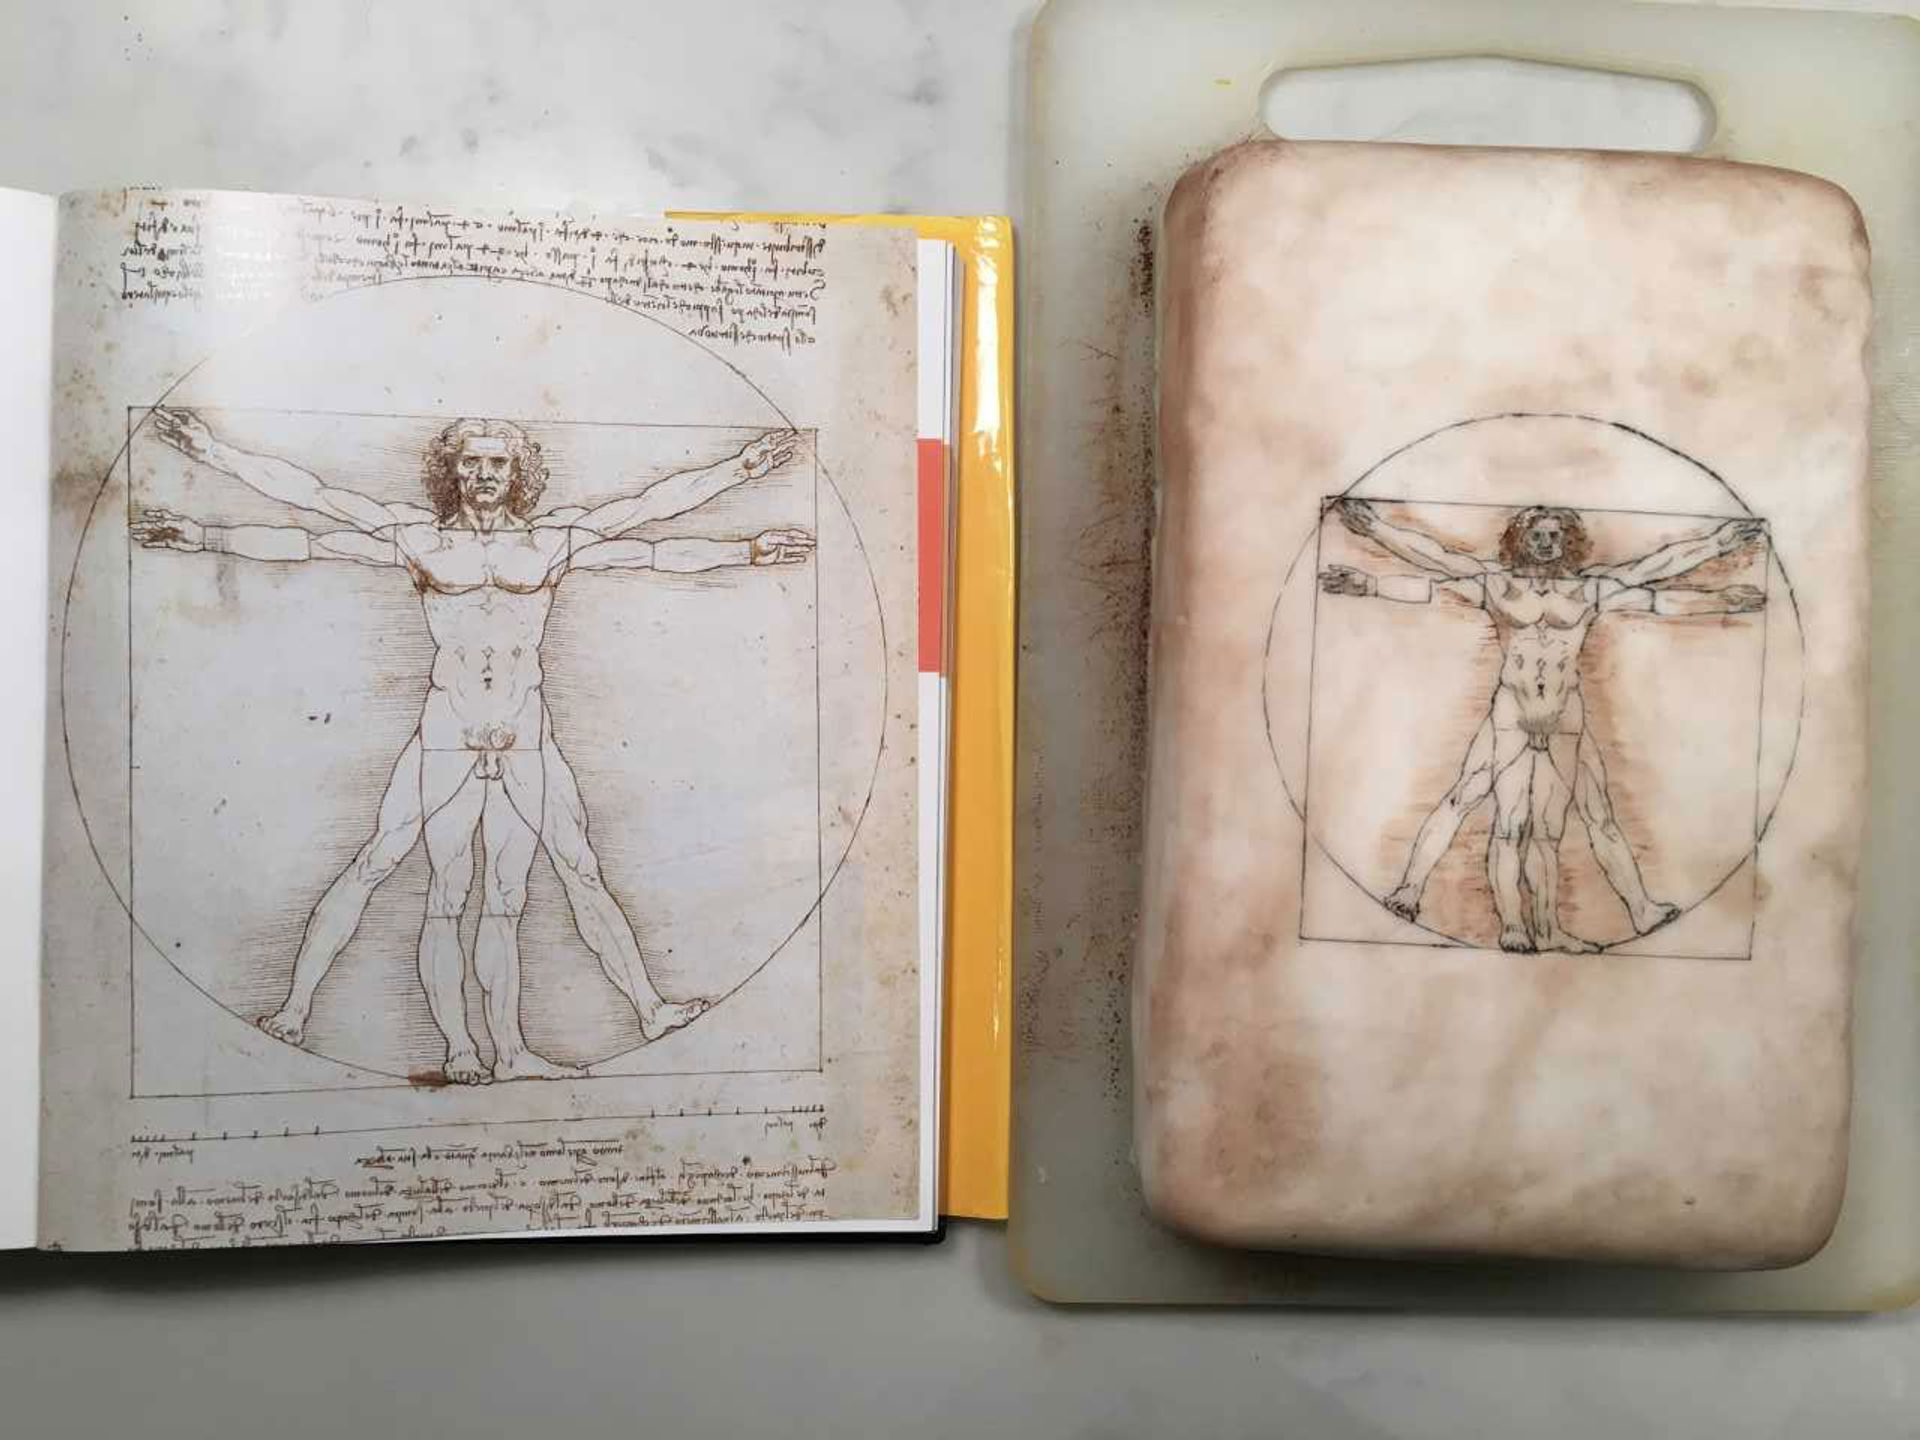 Sophie (tweeted to #ArtBakeOff by her husband Andrew Shore) has recreated Da Vinci's 'Vetruvian Man' in cake form The artist